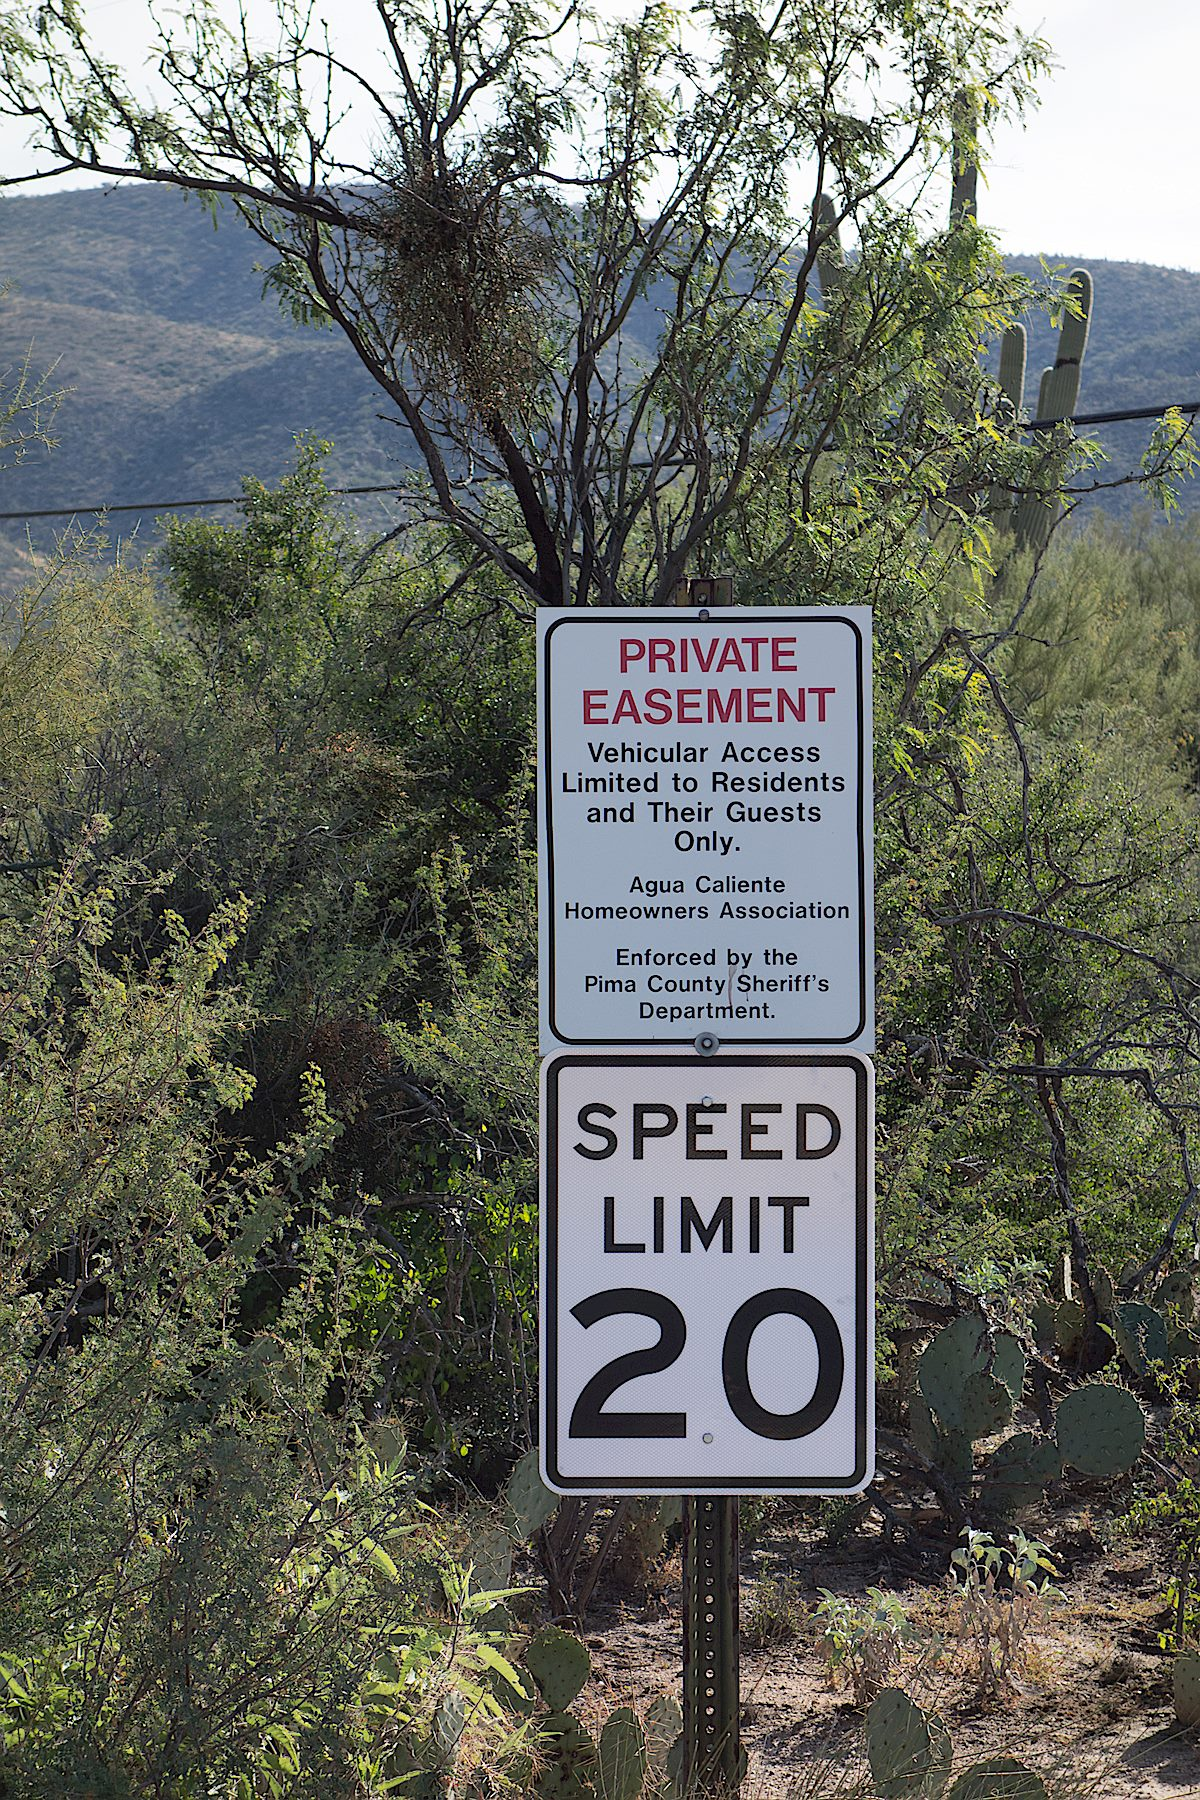 The Avenida de Suzenu Trailhead does not have any signage with the name of the trailhead - this Private Easement sign is one of the few details that hints that this is a well known parking area/trailhead. December 2014.